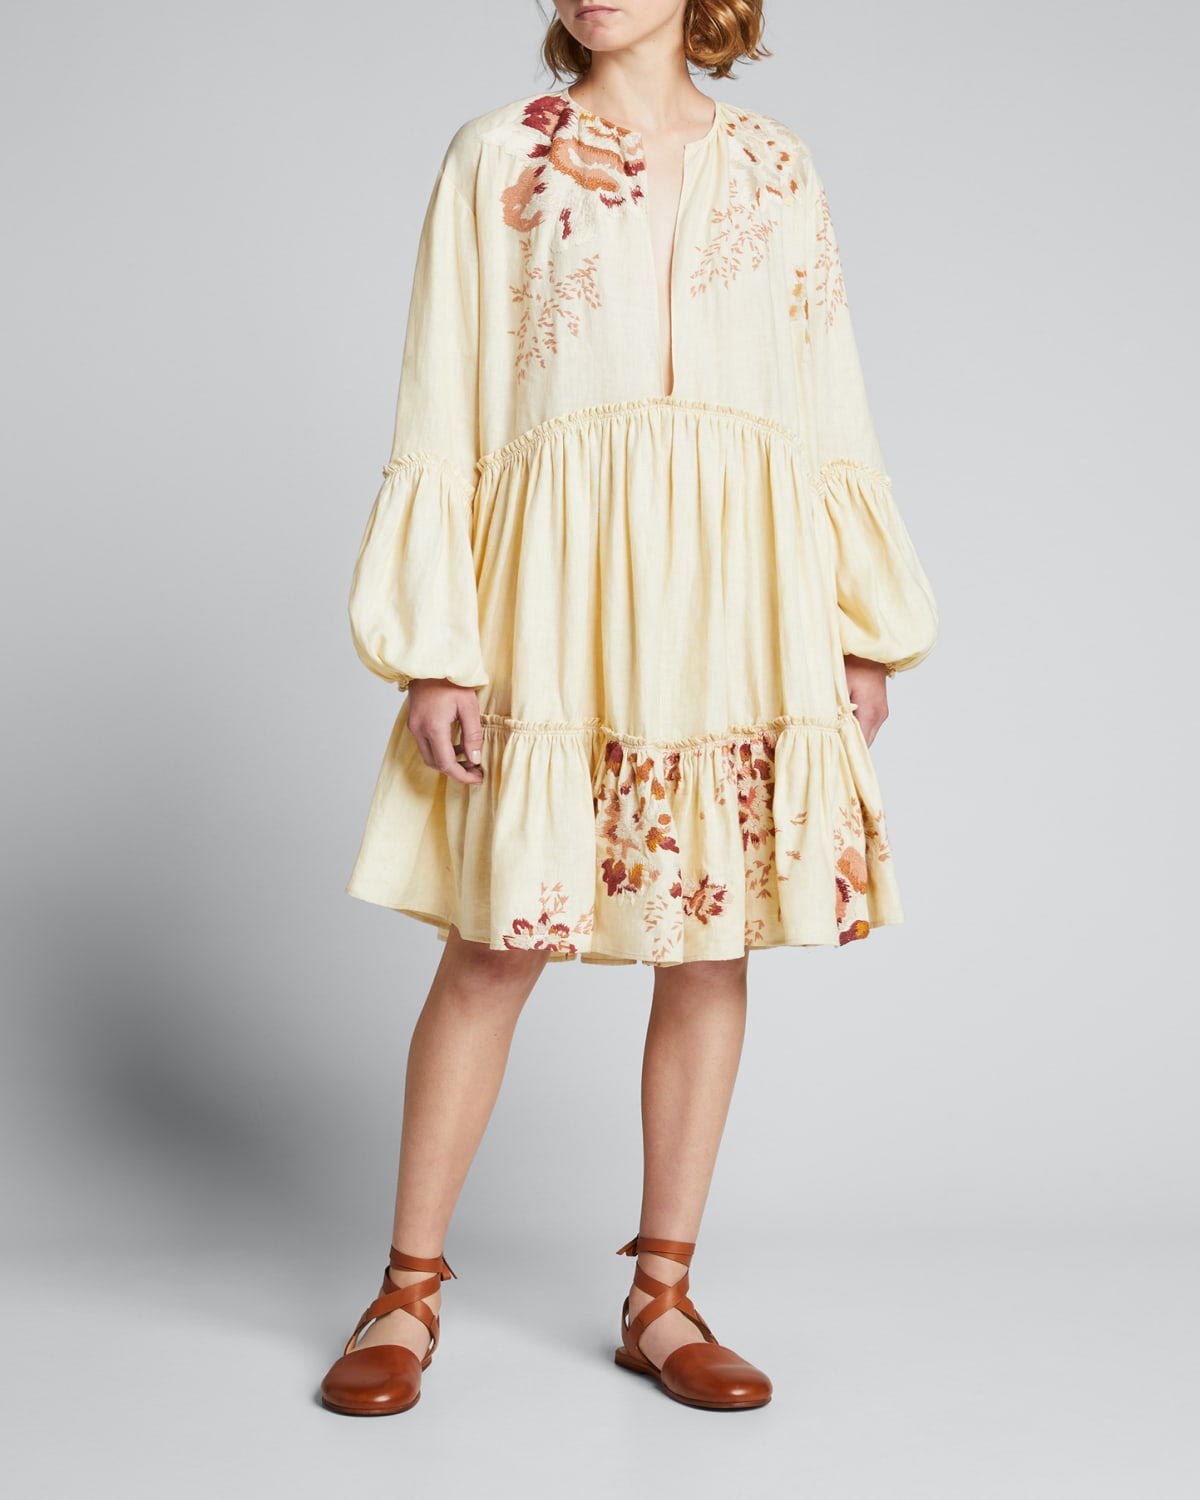 Marila Embroidered Tiered Dress